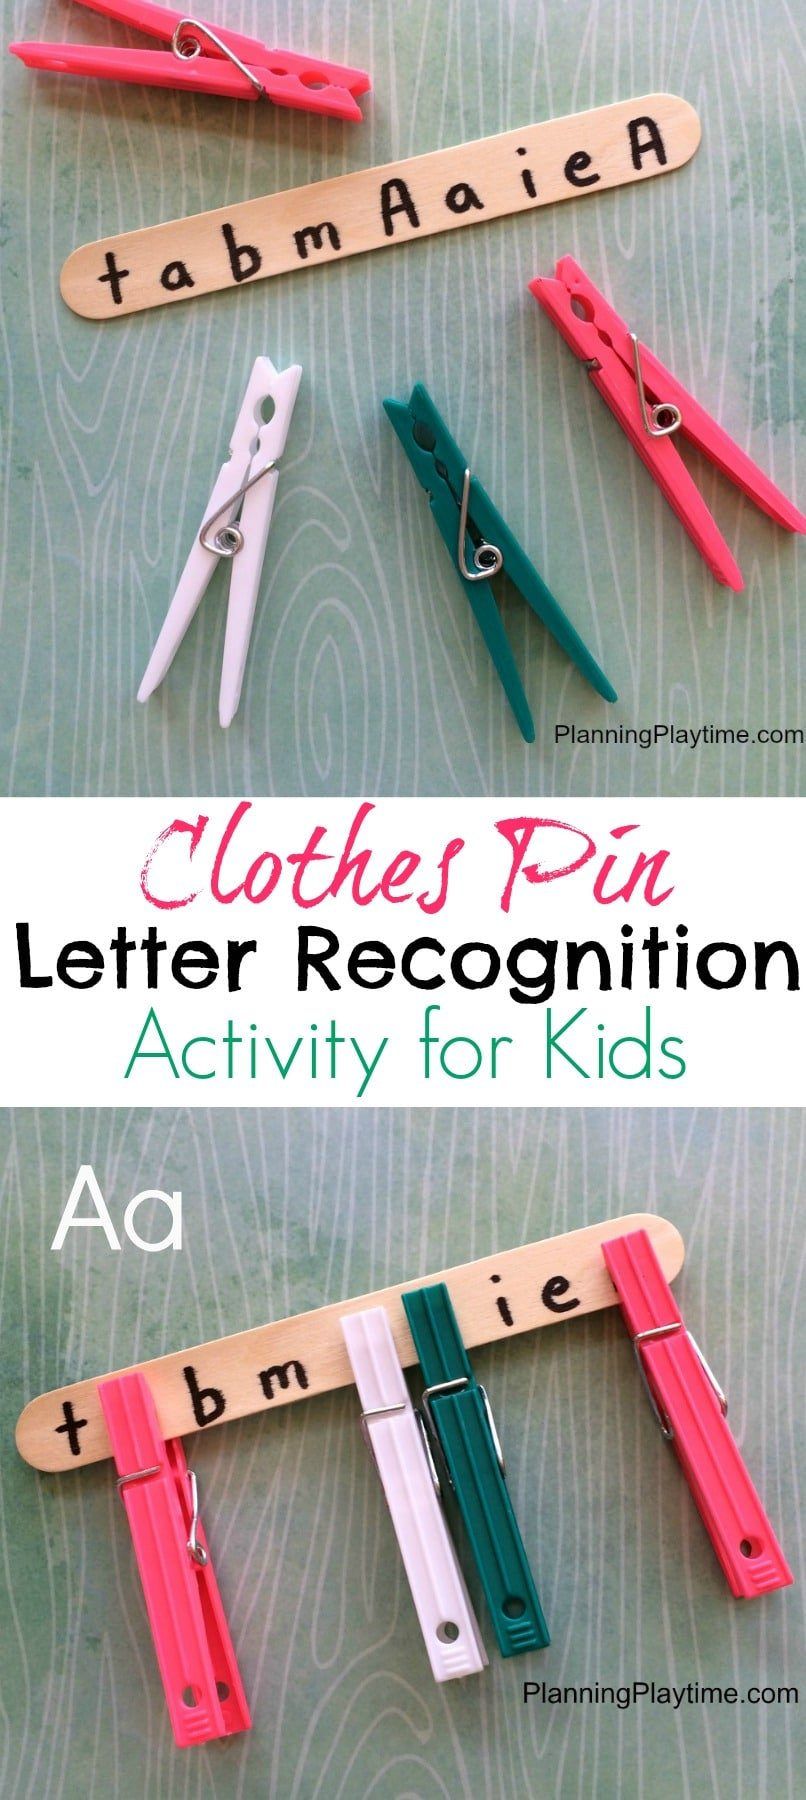 Clothes Pin Letter Recognition Activity for Preschool. So Fun!